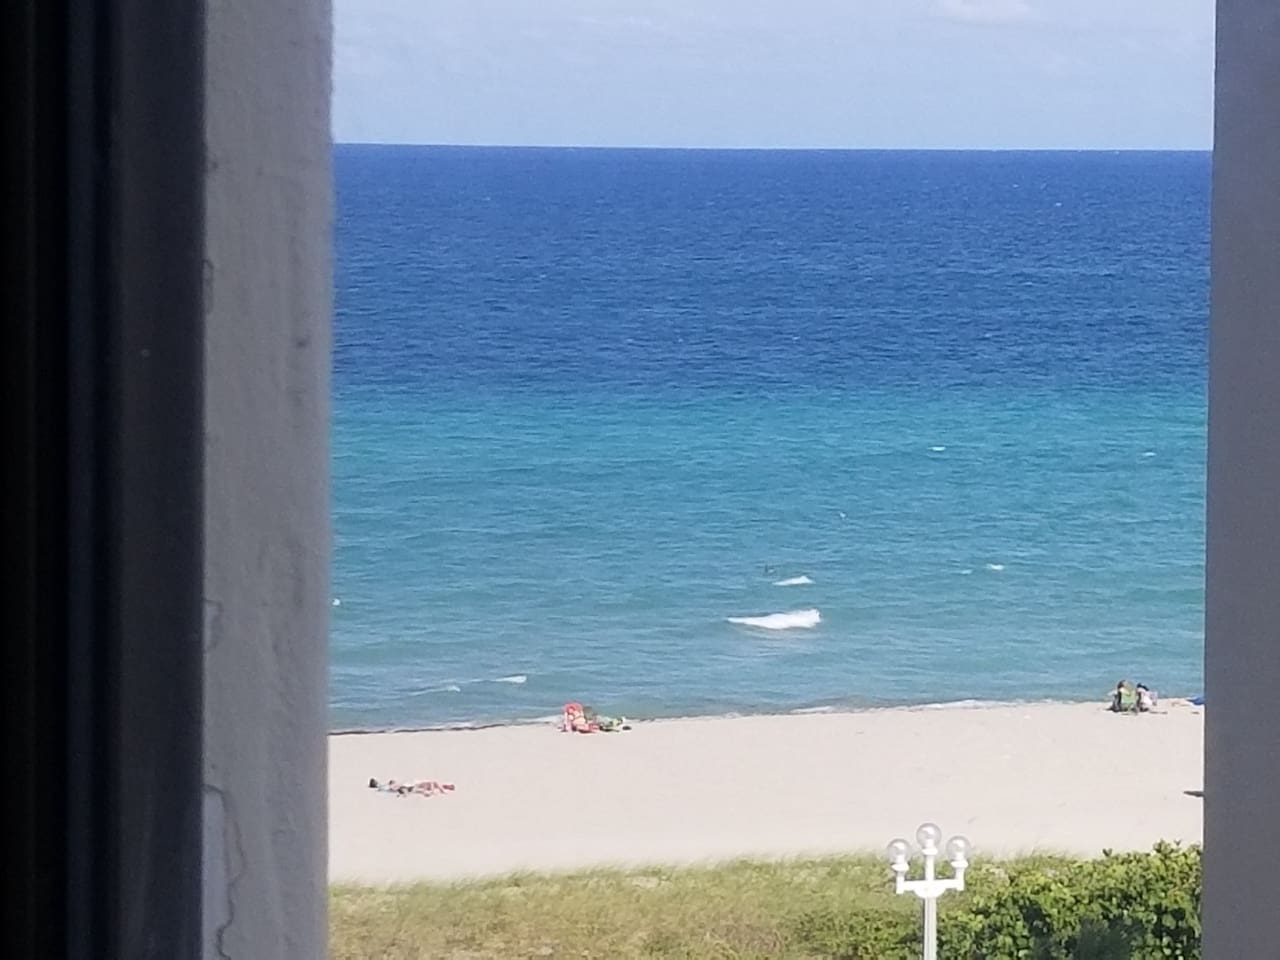 View of the beach from the window.